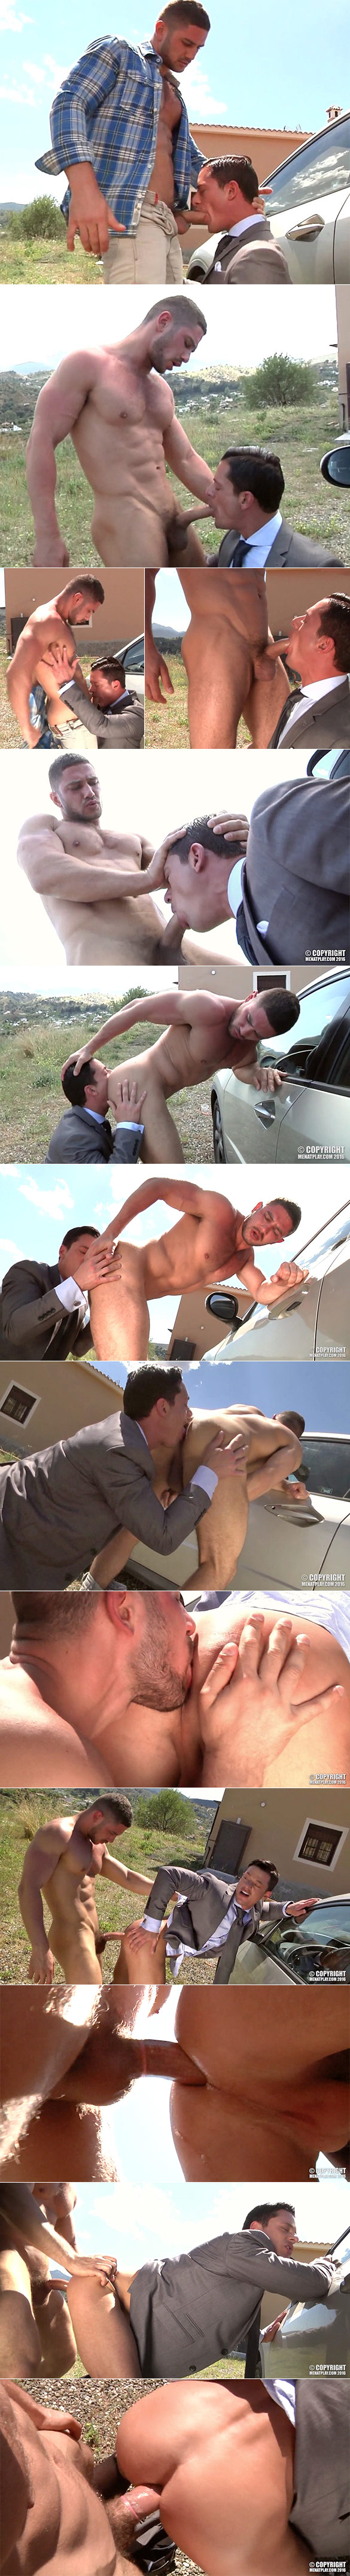 "MenAtPlay: Dato Foland fucks Rex Cameron in ""Campaign Erection"""